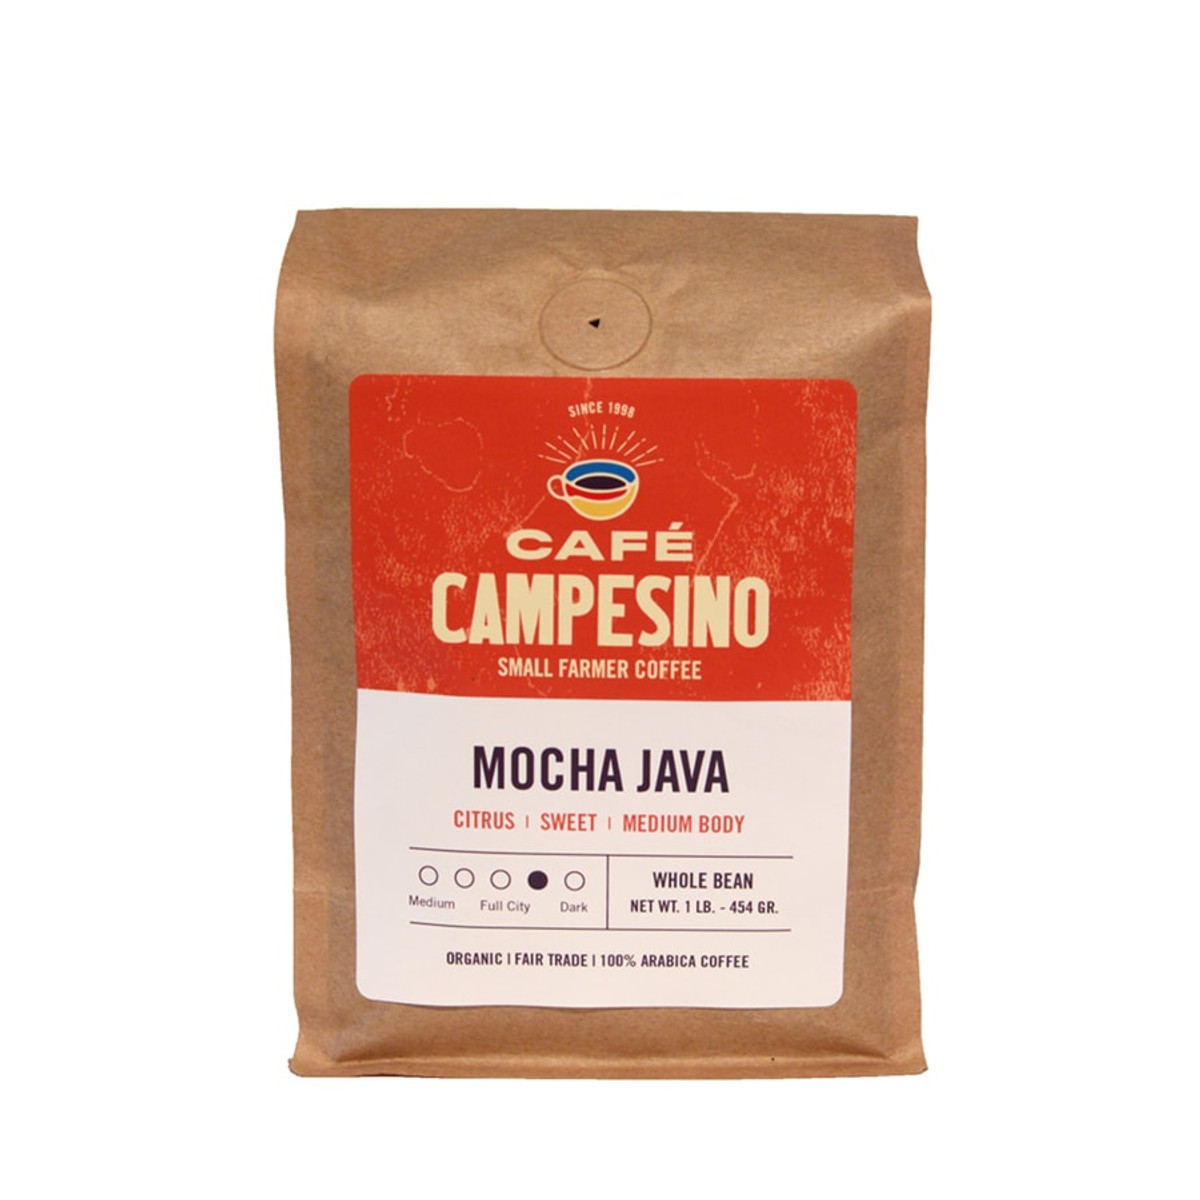 A delicious fair trade, organic, shade-grown blend of Indonesian and African coffee with a sweet, silky-bodied coffee with bright, citrus acidity.